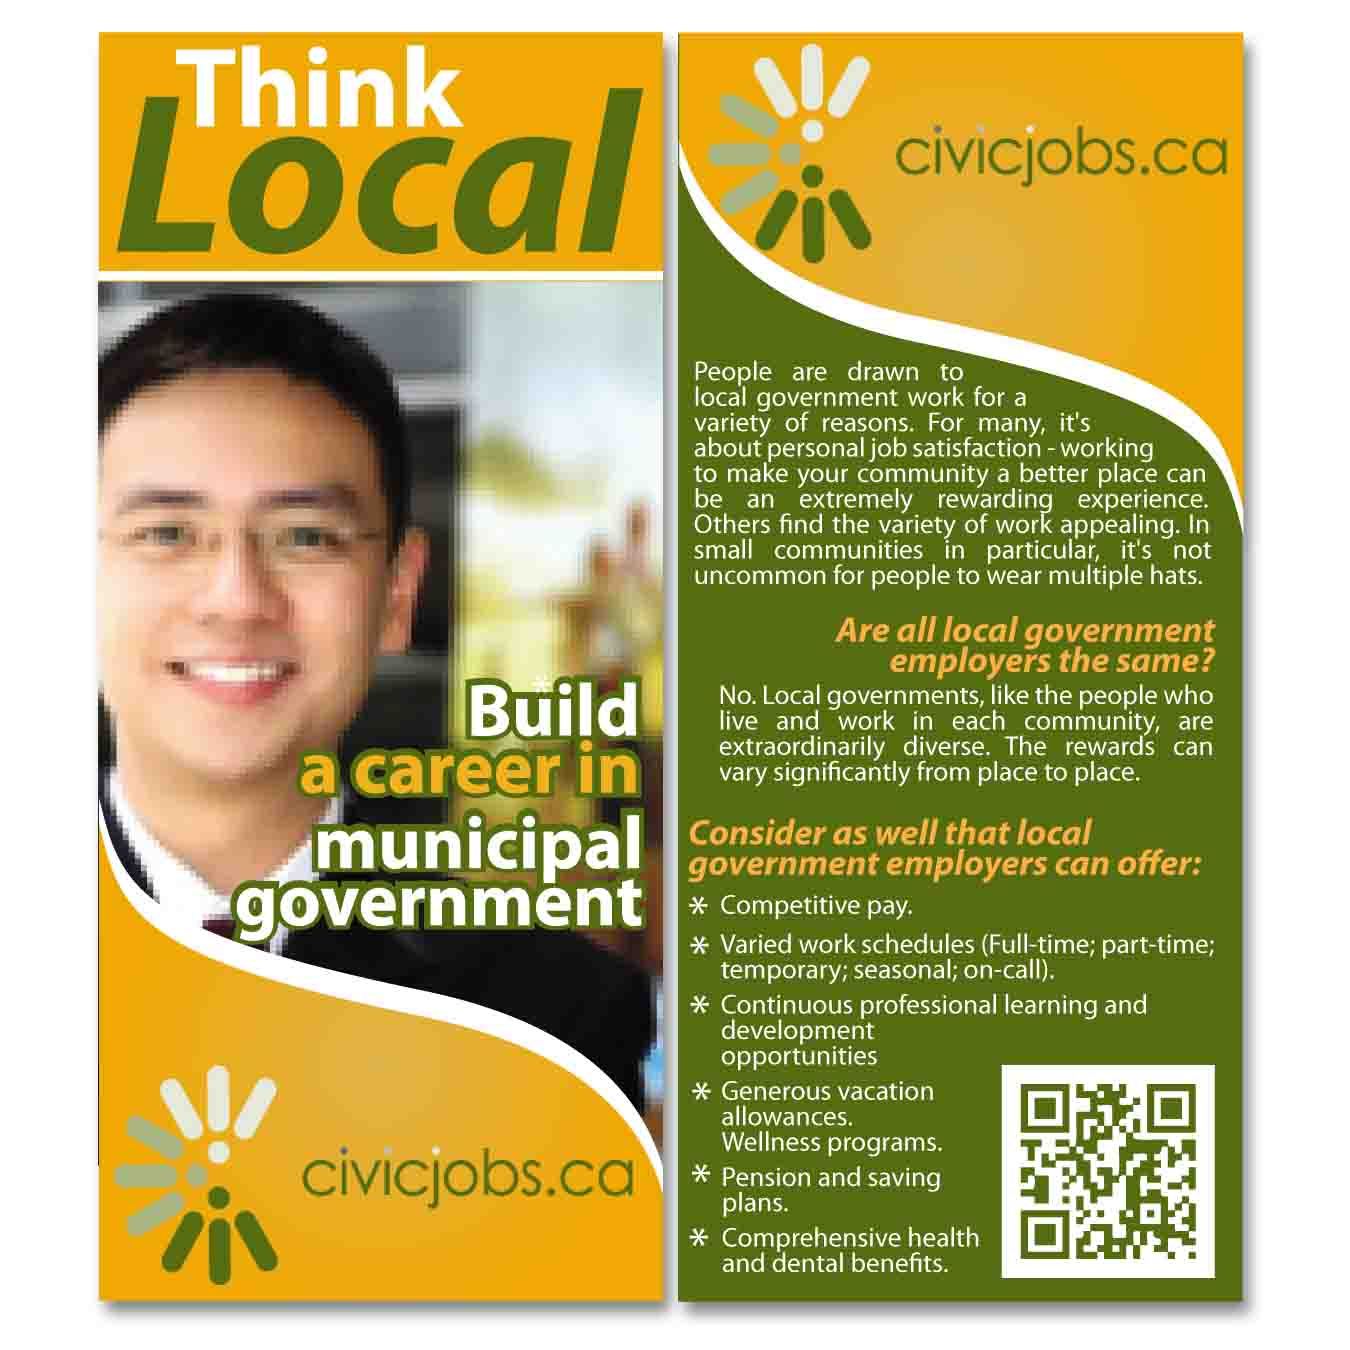 "Print Design by Agung Nugroho - Entry No. 18 in the Print Design Contest Print Design Wanted for CivicJobs.ca - 4"" X 9"" rack card, 2 sided, print ready.."